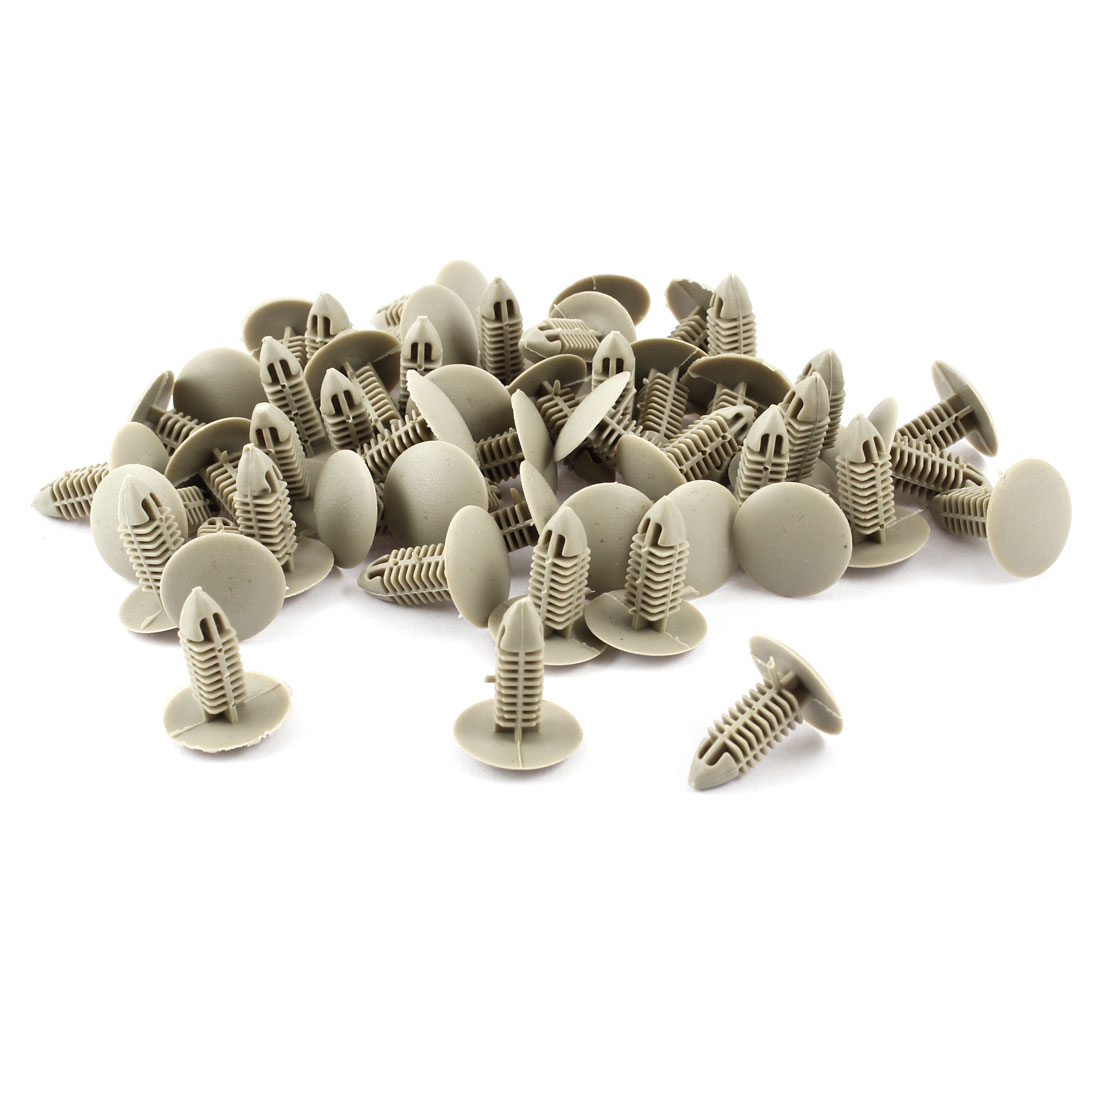 Auto Car Door Fender 7mm Hole Plastic Rivets Fastener Light Gray 50 Pcs